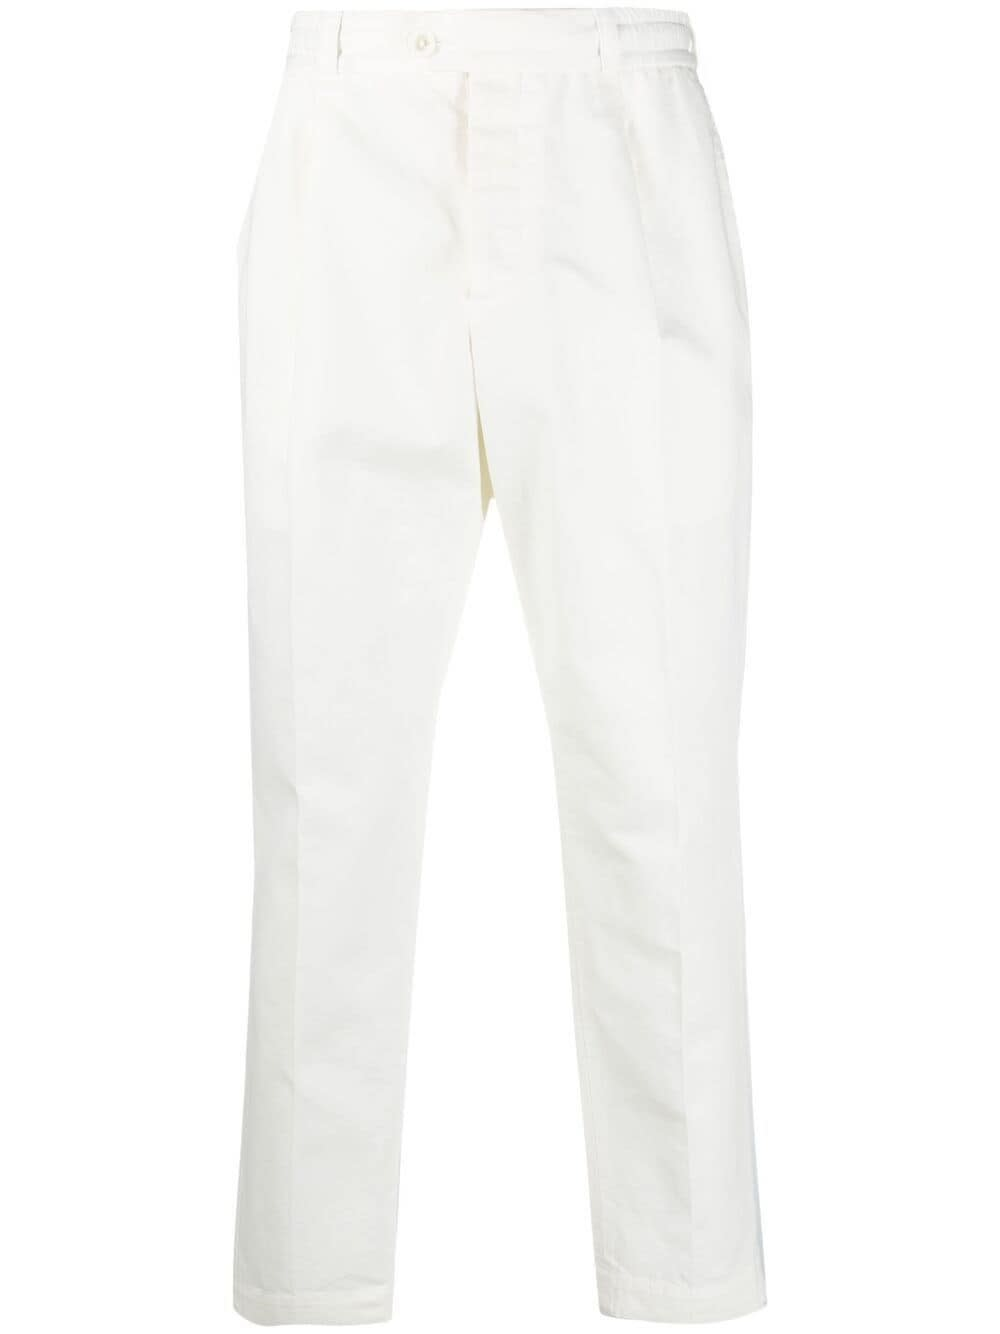 Pt01 Clothing WHITE COTTON AND LINEN PANTS